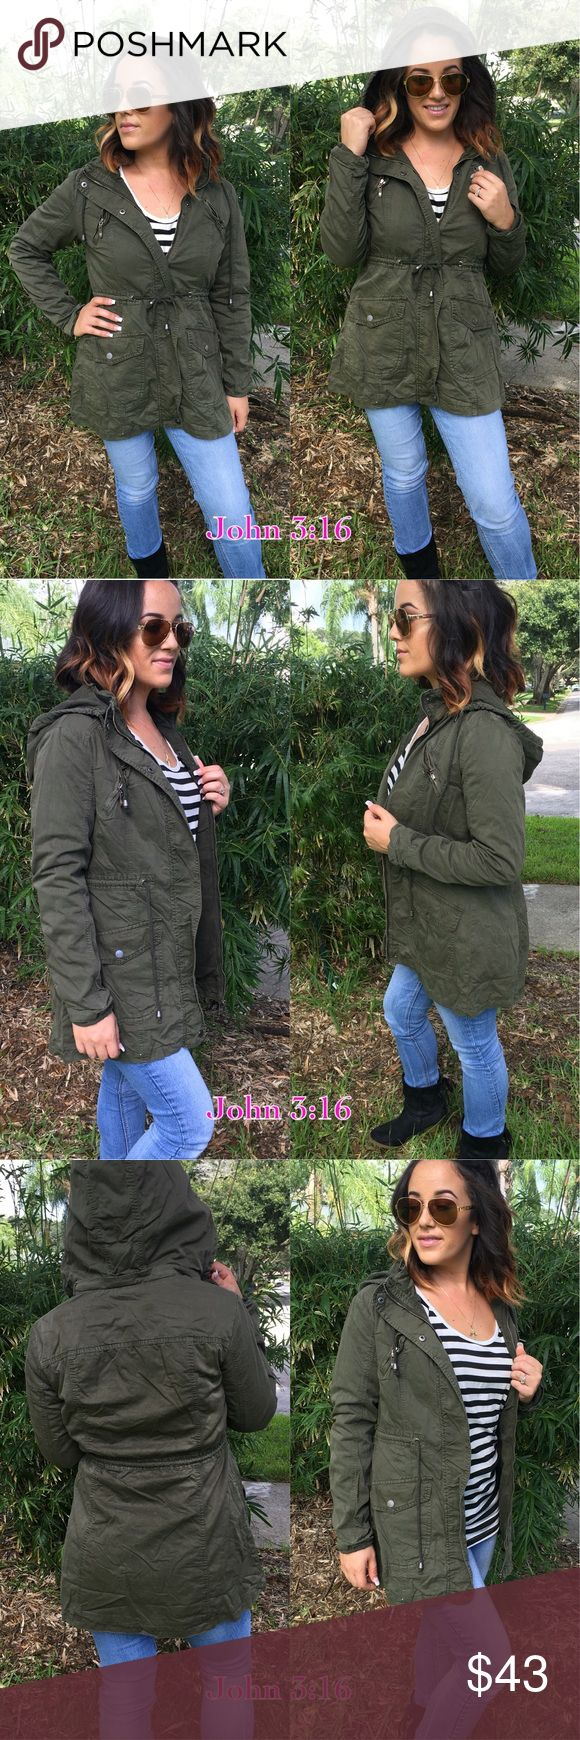 Olive utility jackets Olive utility jacket is 100% cotton and thick enough to keep you warm during the cool fall days. TTS - Price is firm - S(2/4) M(6/8) L(10/12) XL(14) Jackets & Coats Utility Jackets